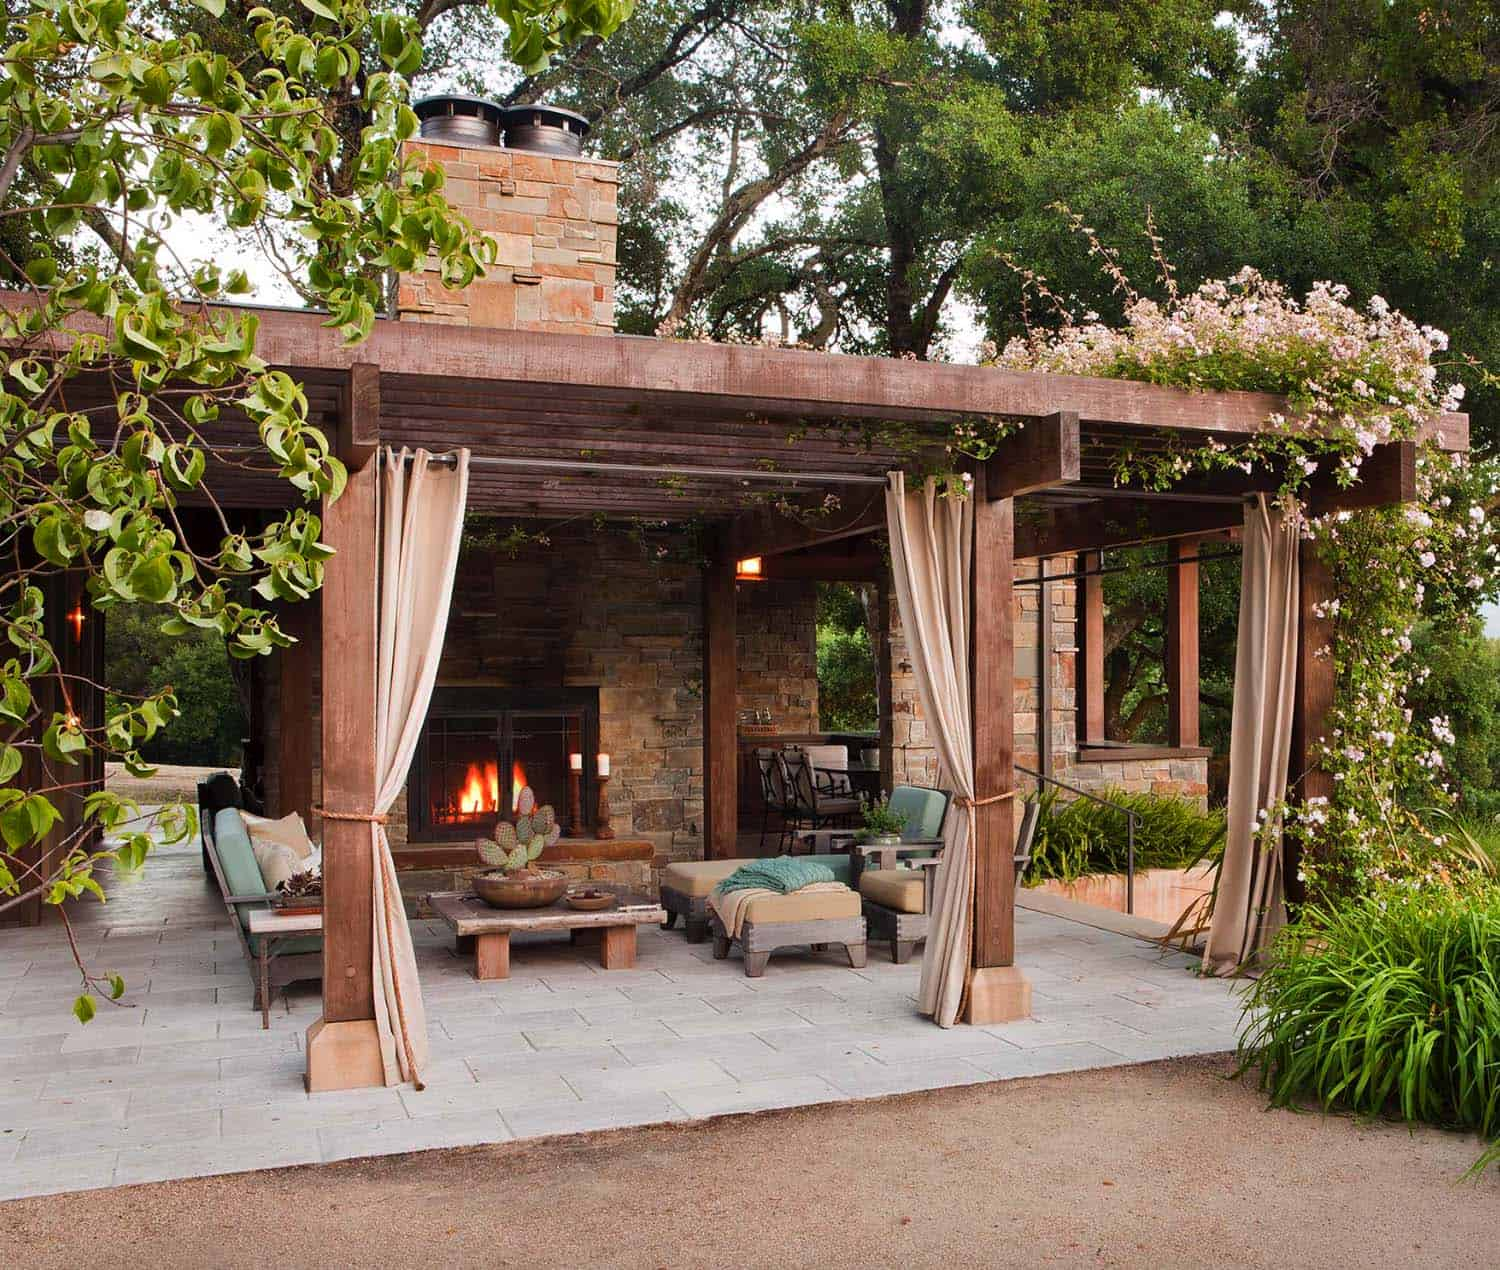 30+ Irresistible outdoor fireplace ideas that will leave ... on Outdoor Kitchen And Fireplace Ideas id=62550